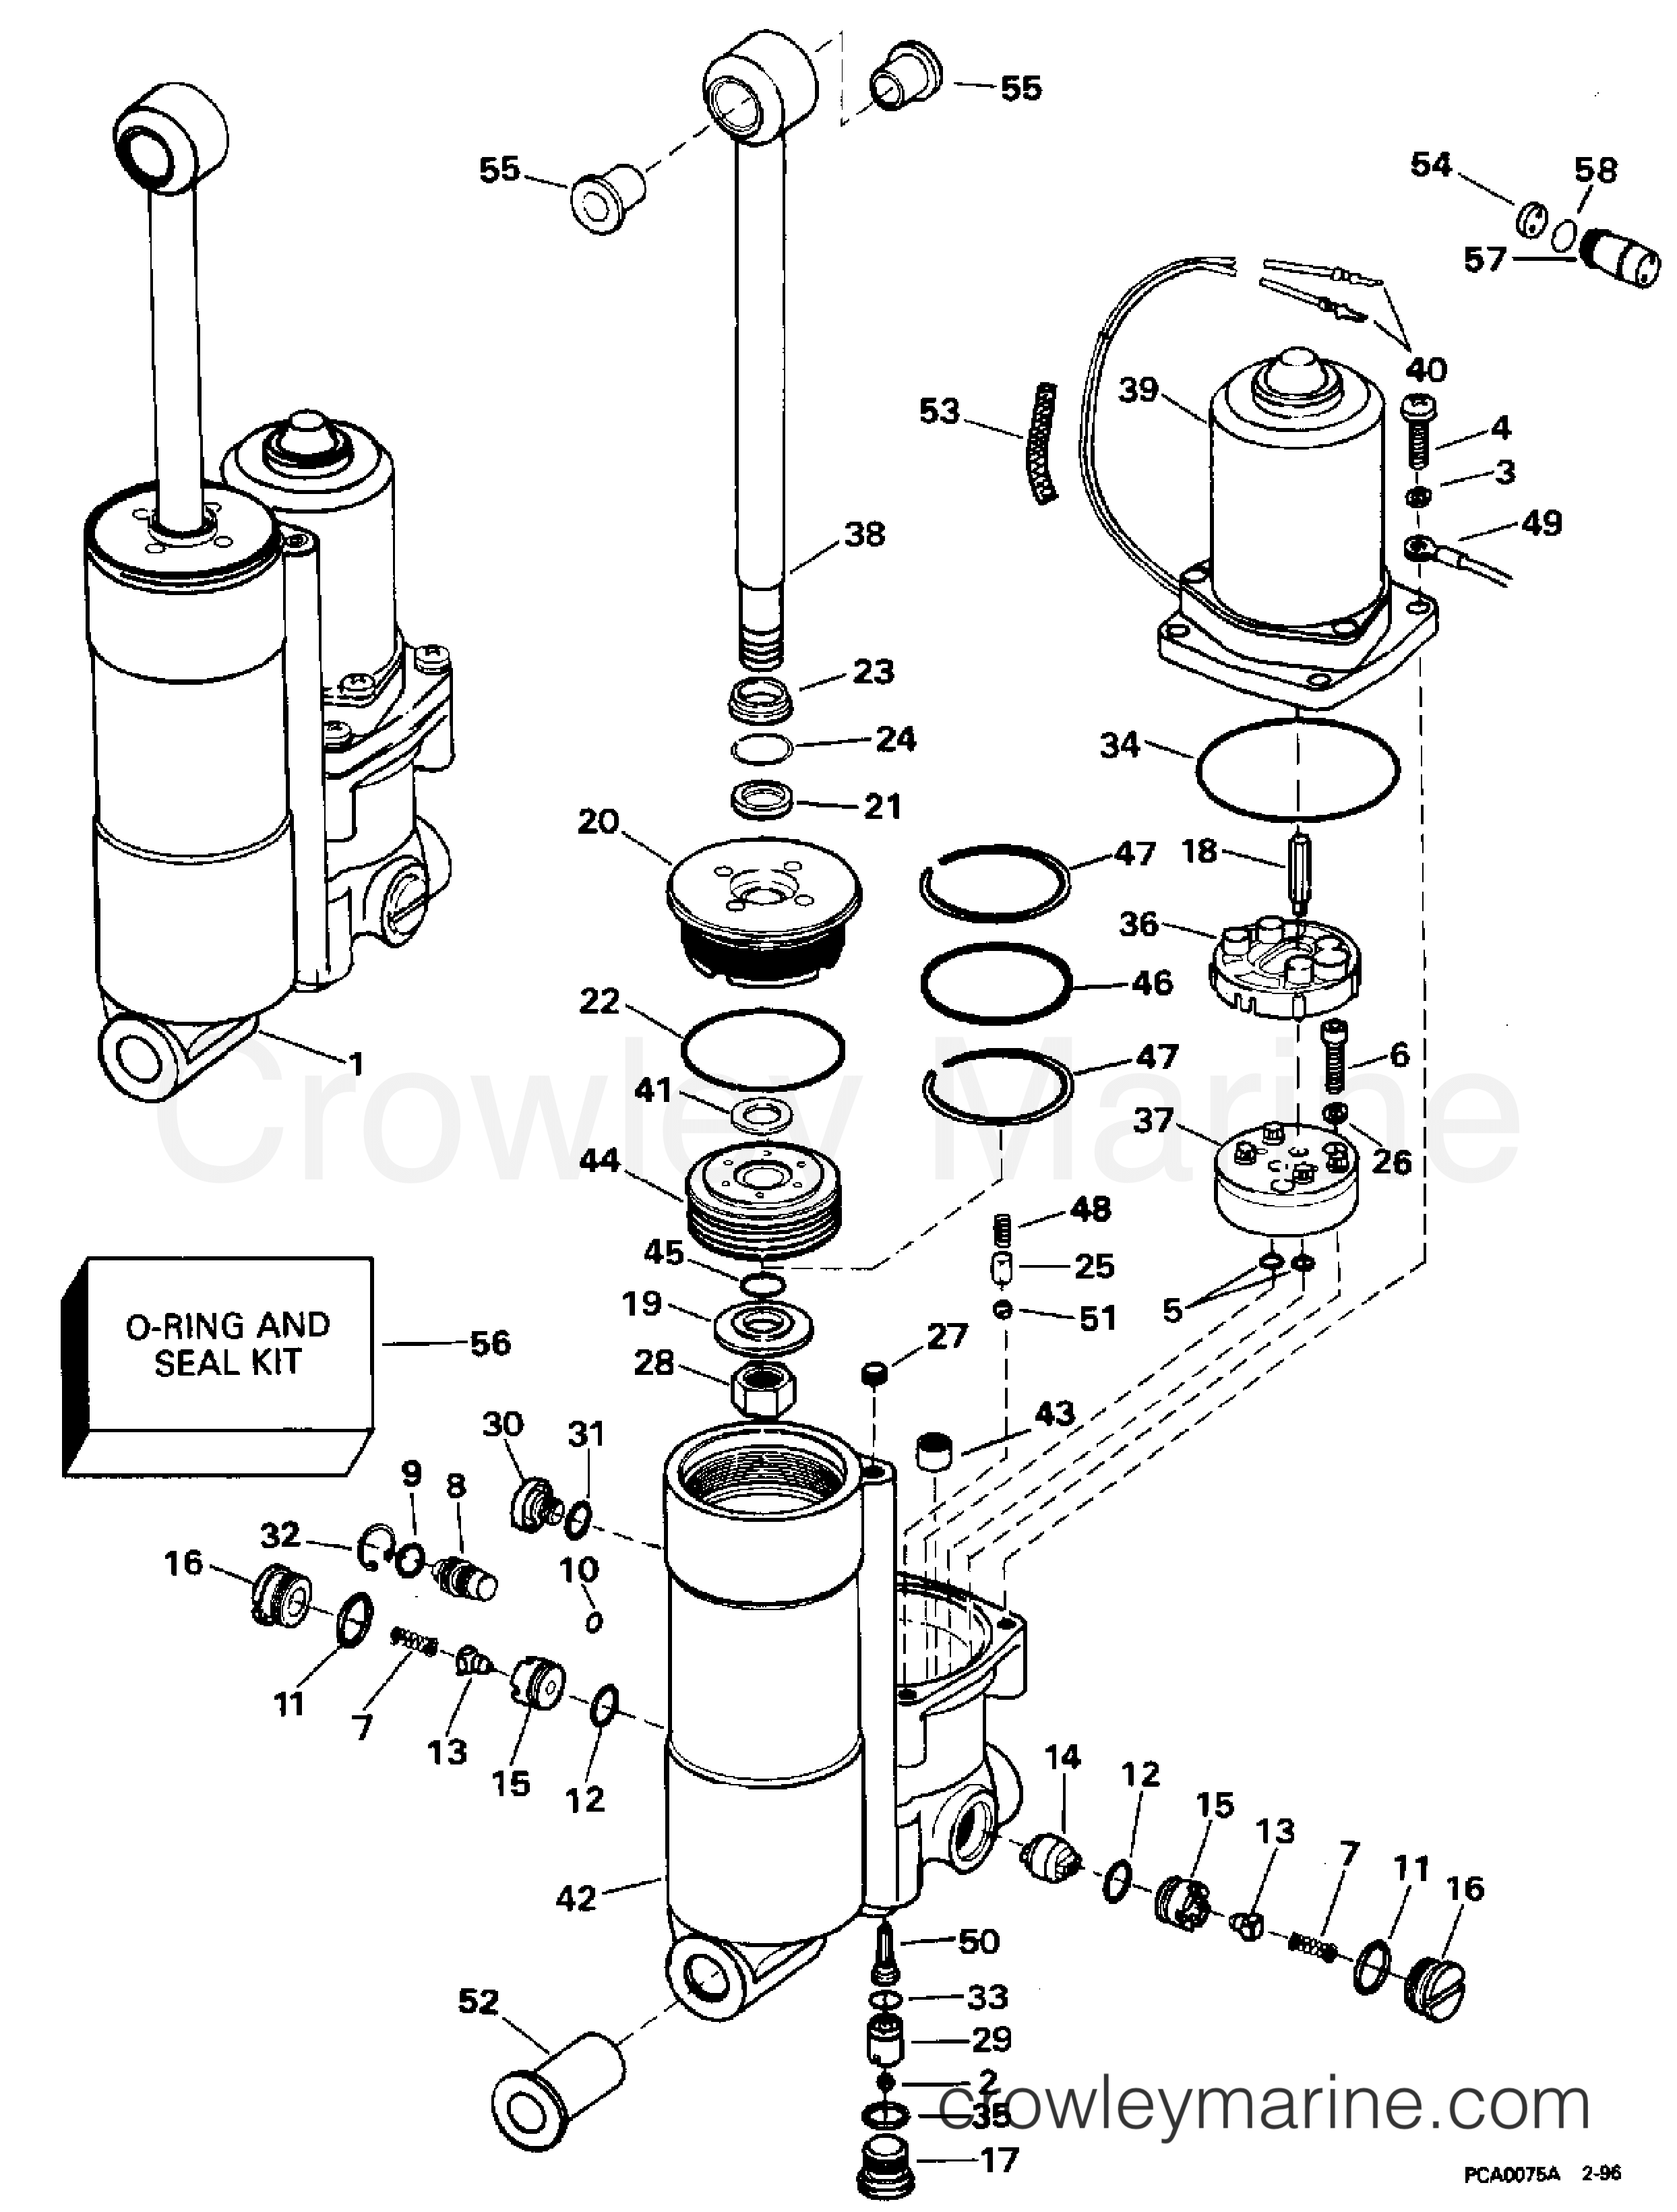 Power trim tilt 1996 evinrude outboards 40 be40eeds crowley marine rh crowleymarine 25 hp johnson outboard diagram johnson boat wiring diagram